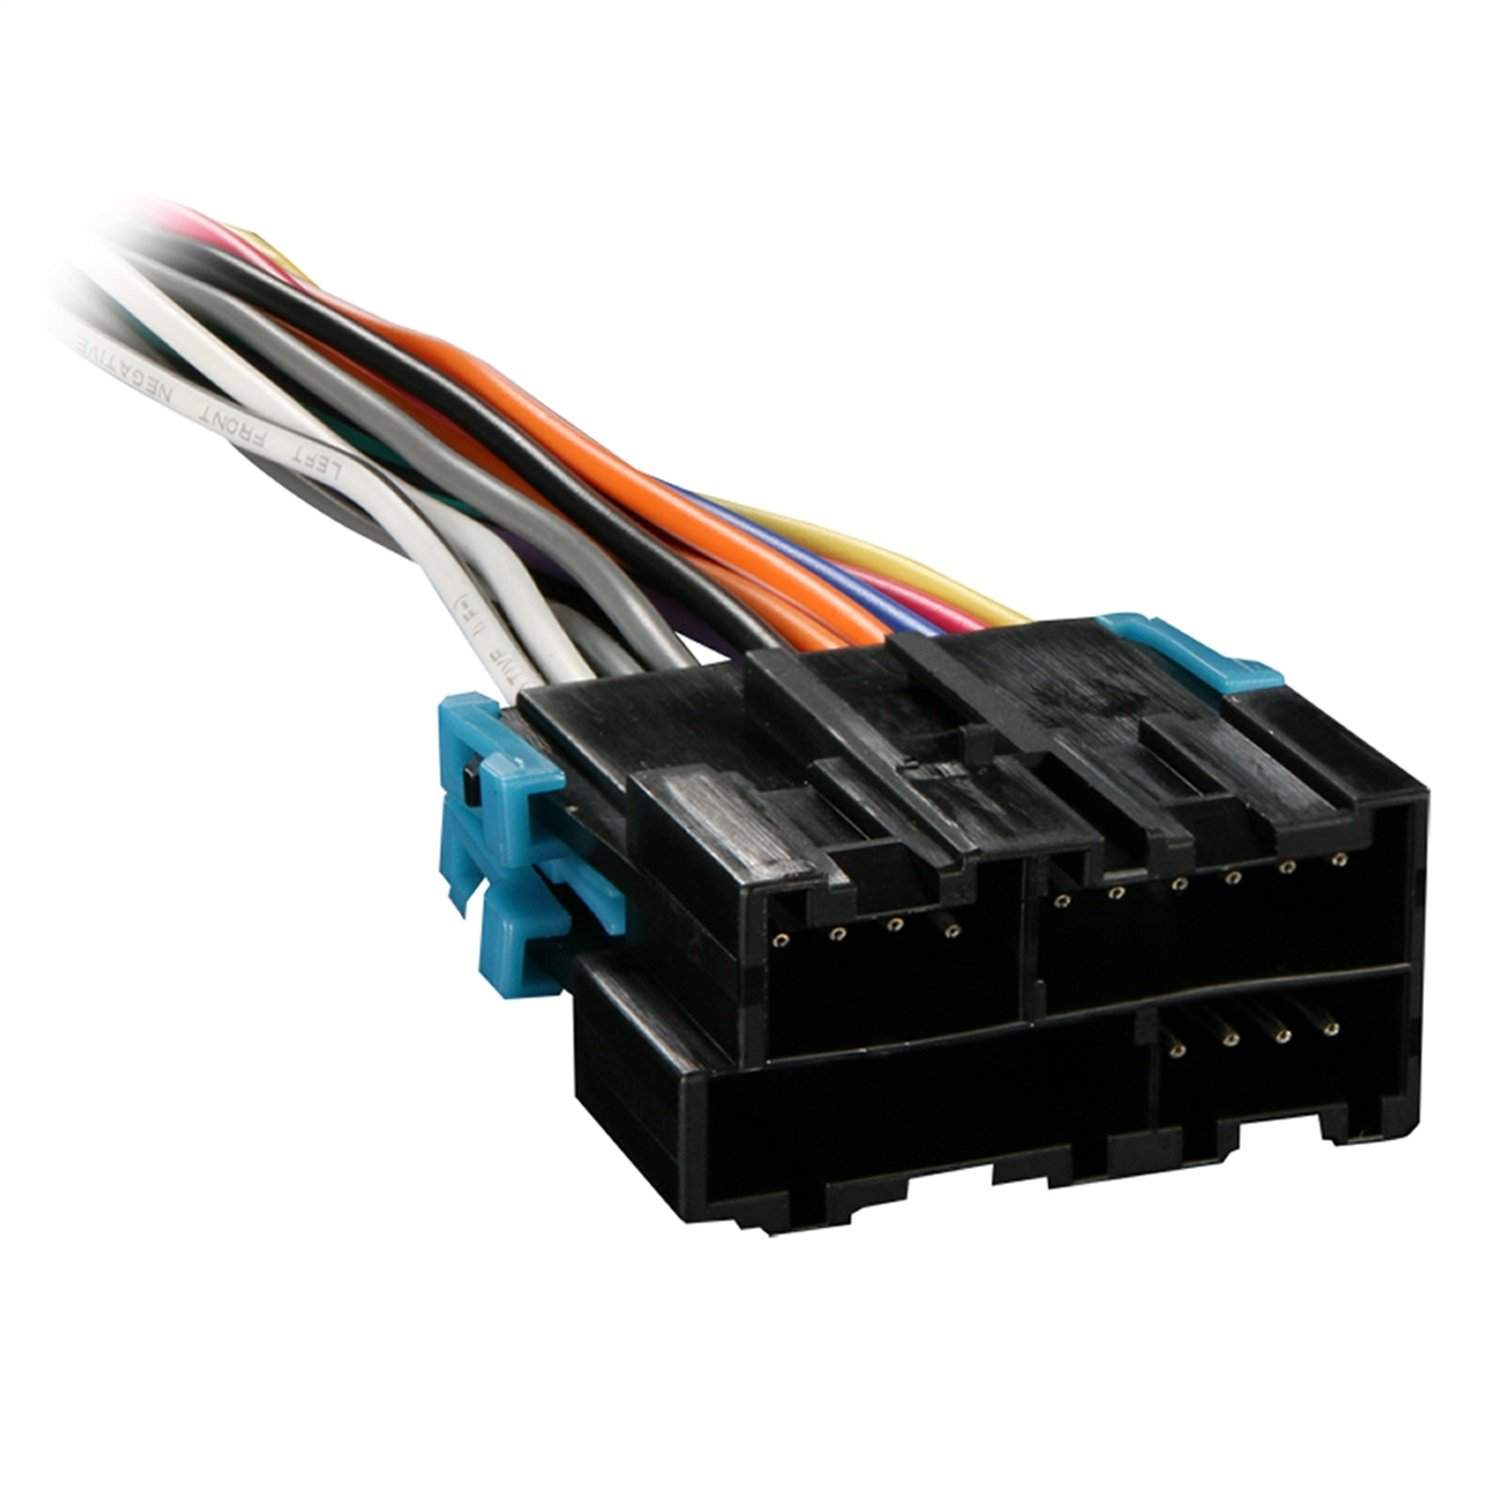 Metra 70 1858 Radio Wiring Harness For Gm 88 05 Diagram Also 1988 Chevy 1500 Further Car Electronics